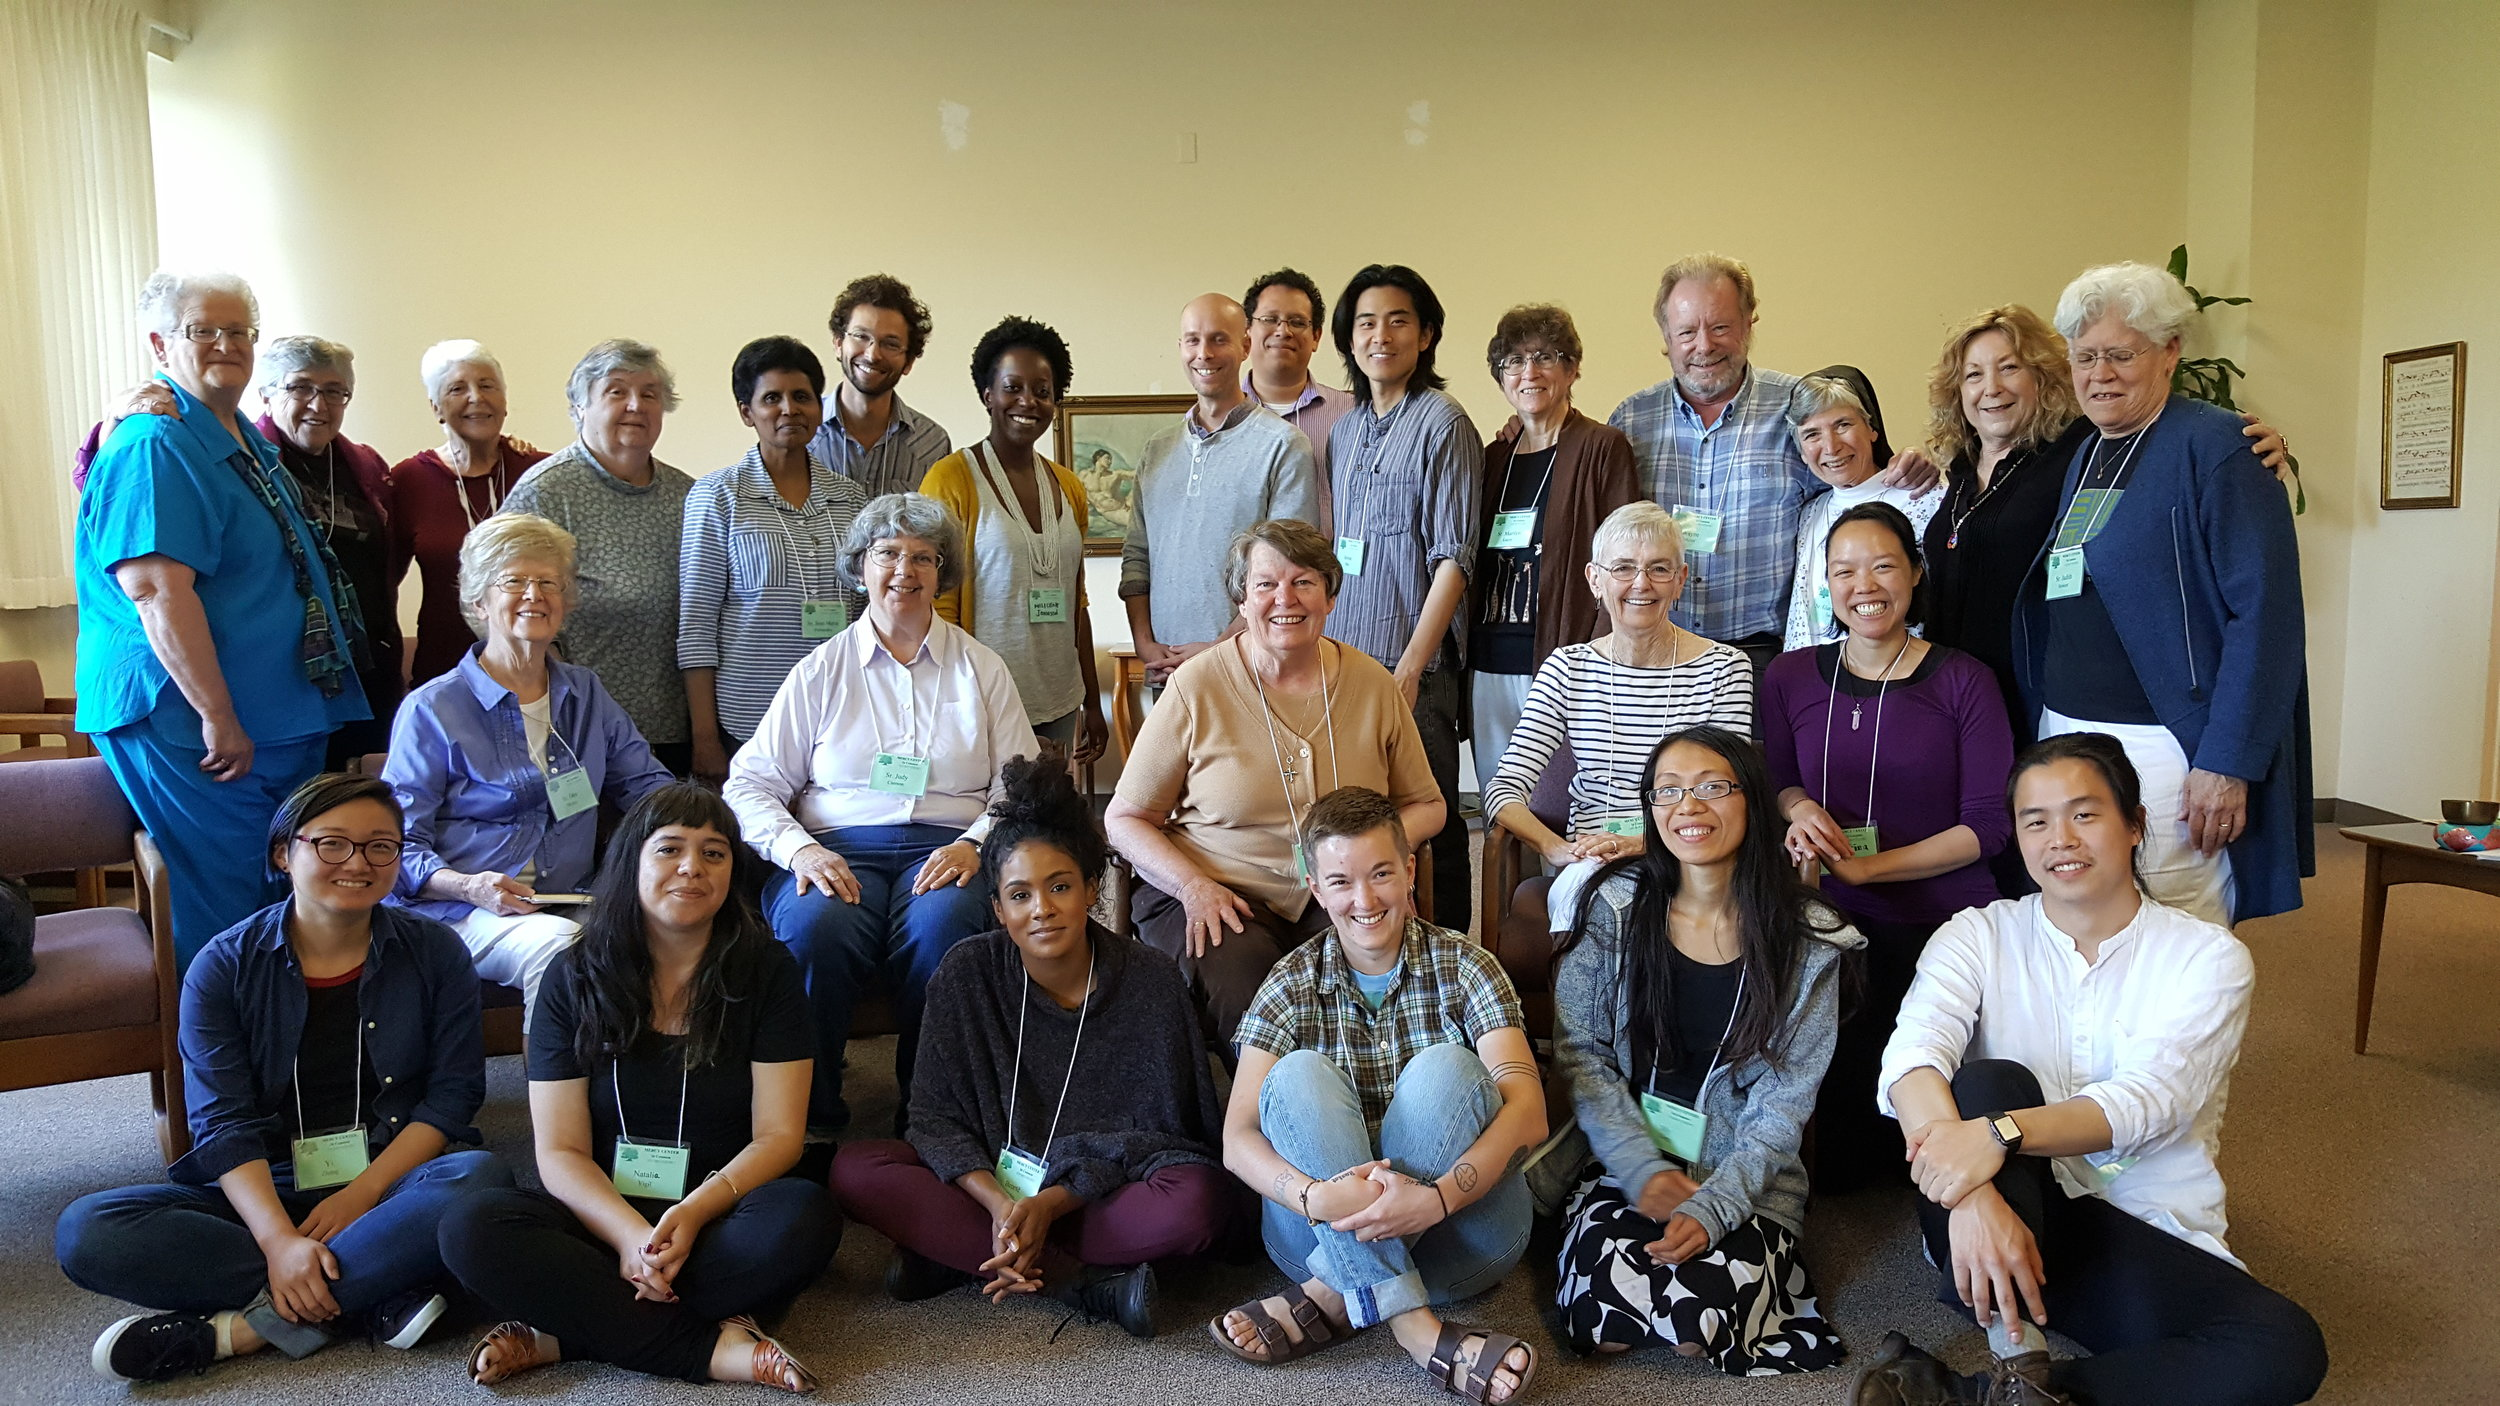 Group photo from the first Bay Area Nuns & Nones gathering. May, 2017.